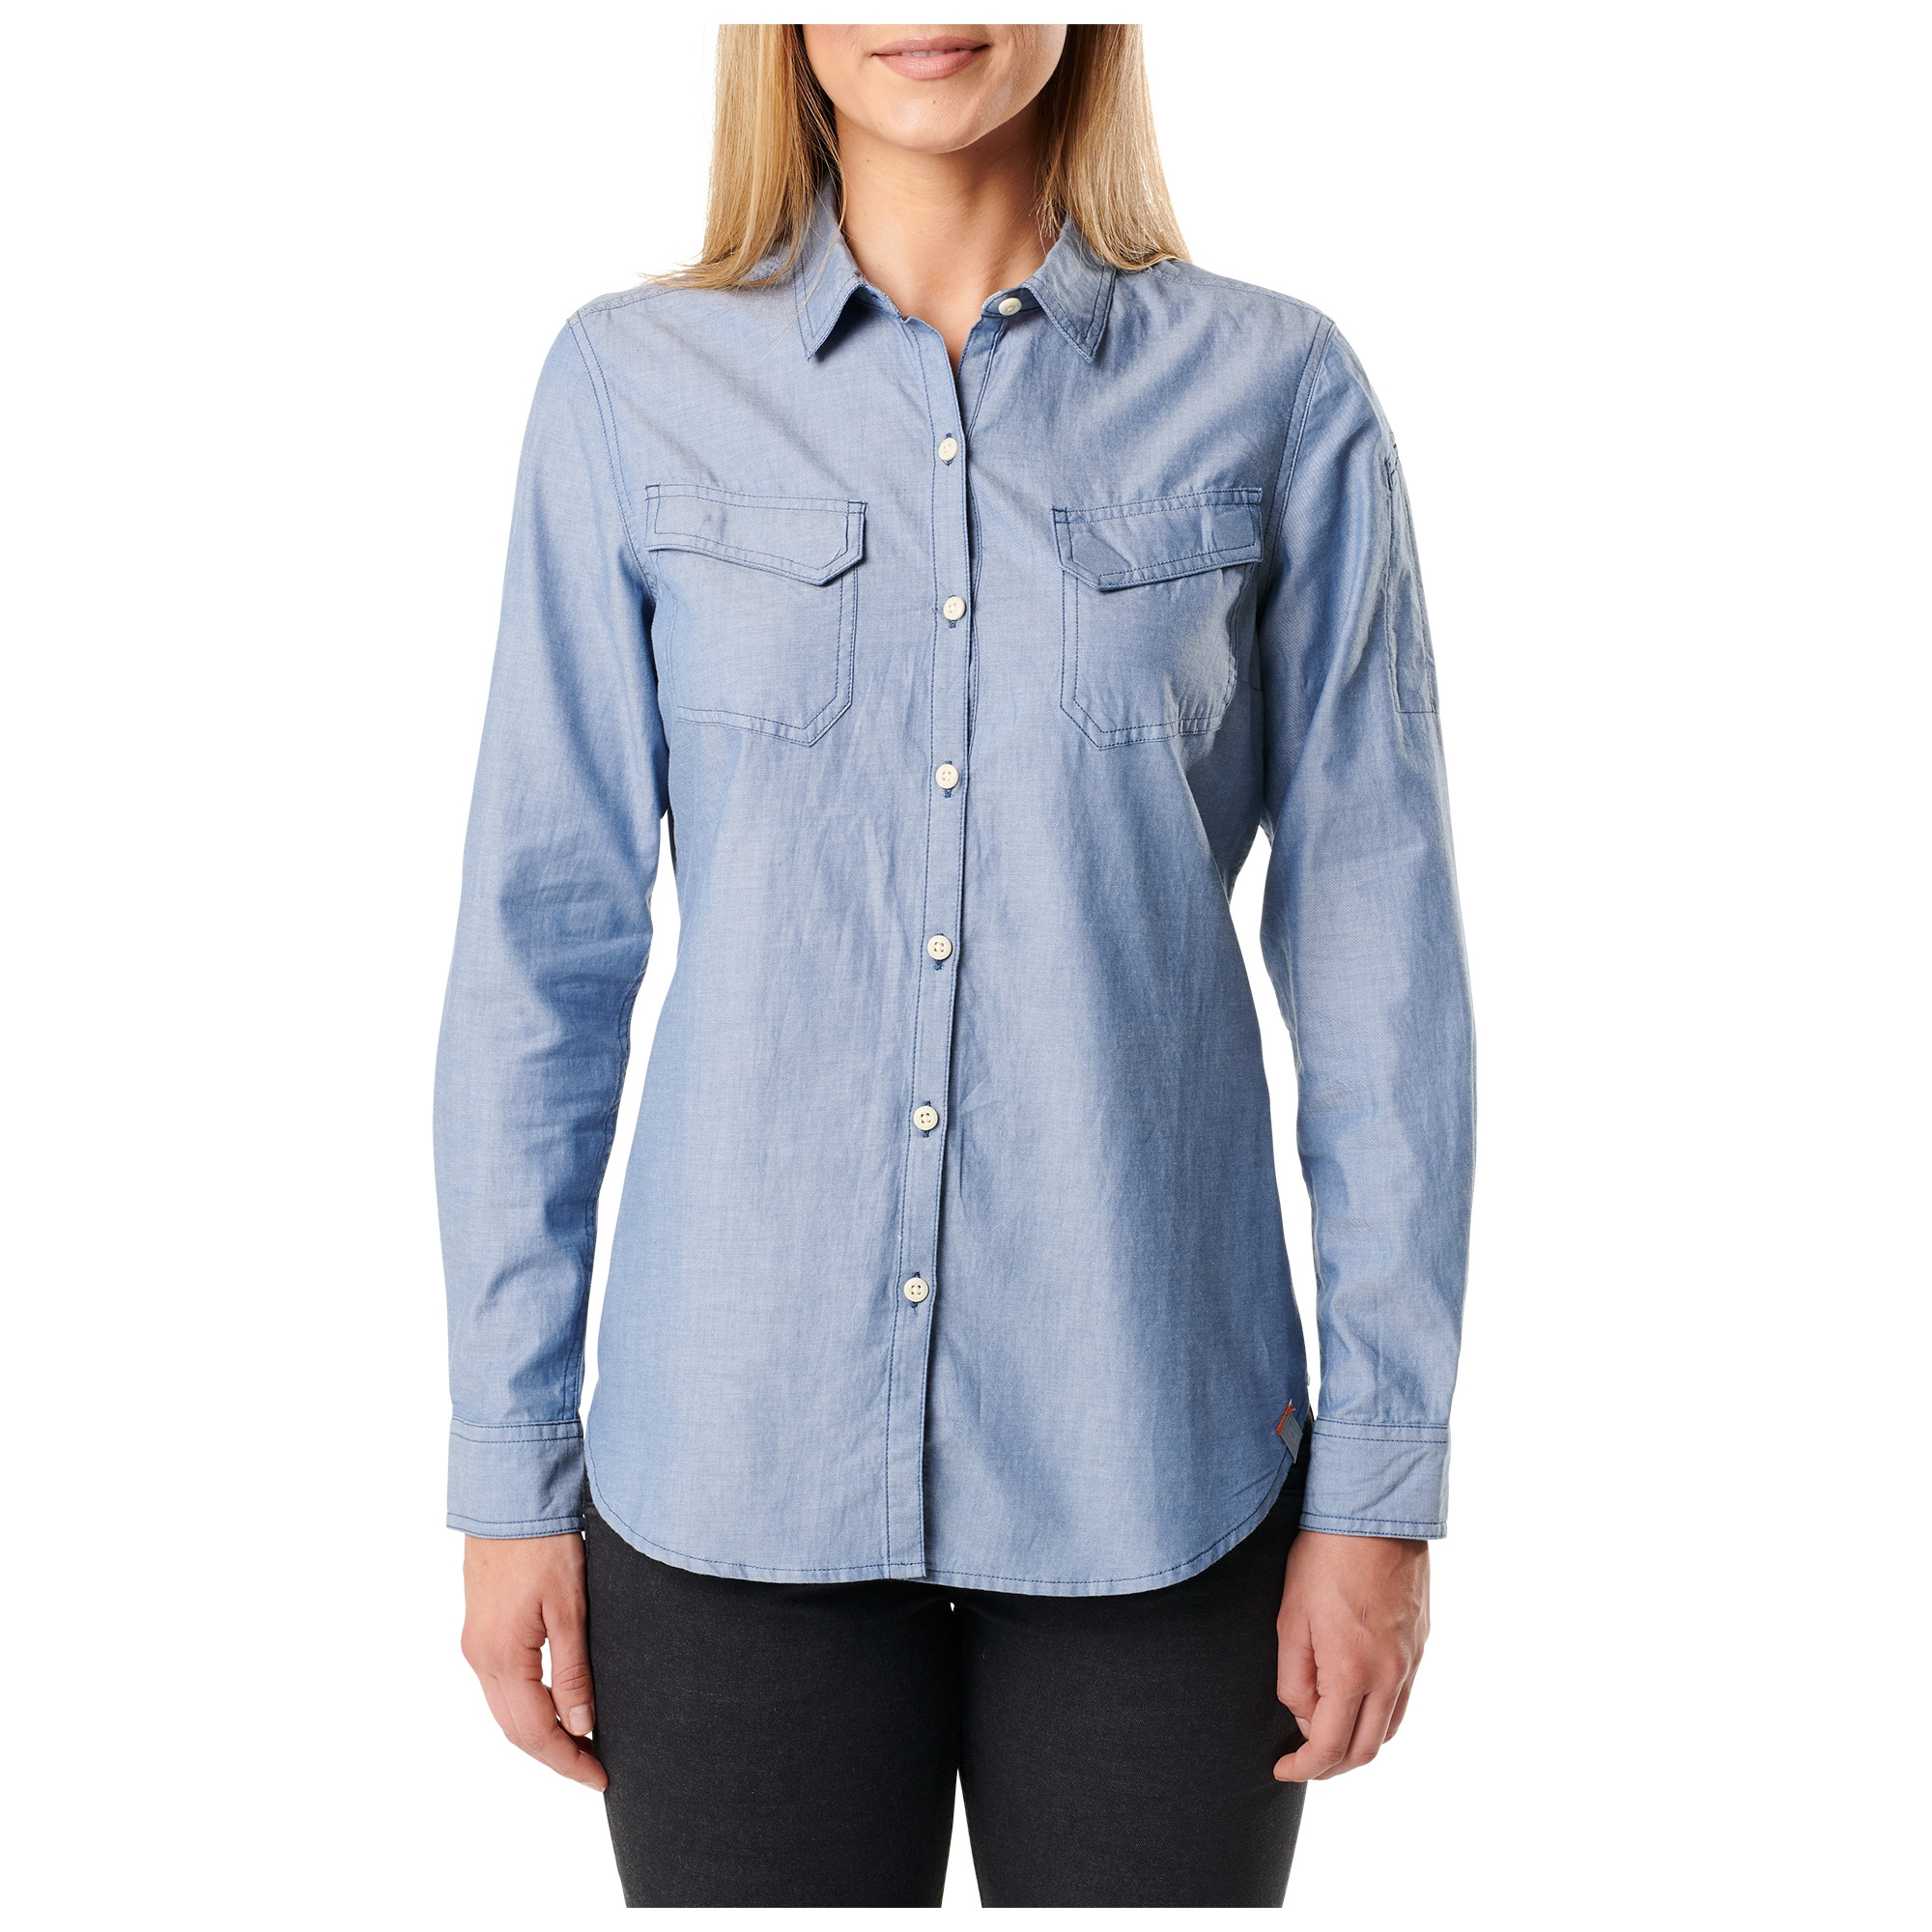 Tactical women 39 s chambray shirt blue for Blue chambray shirt women s